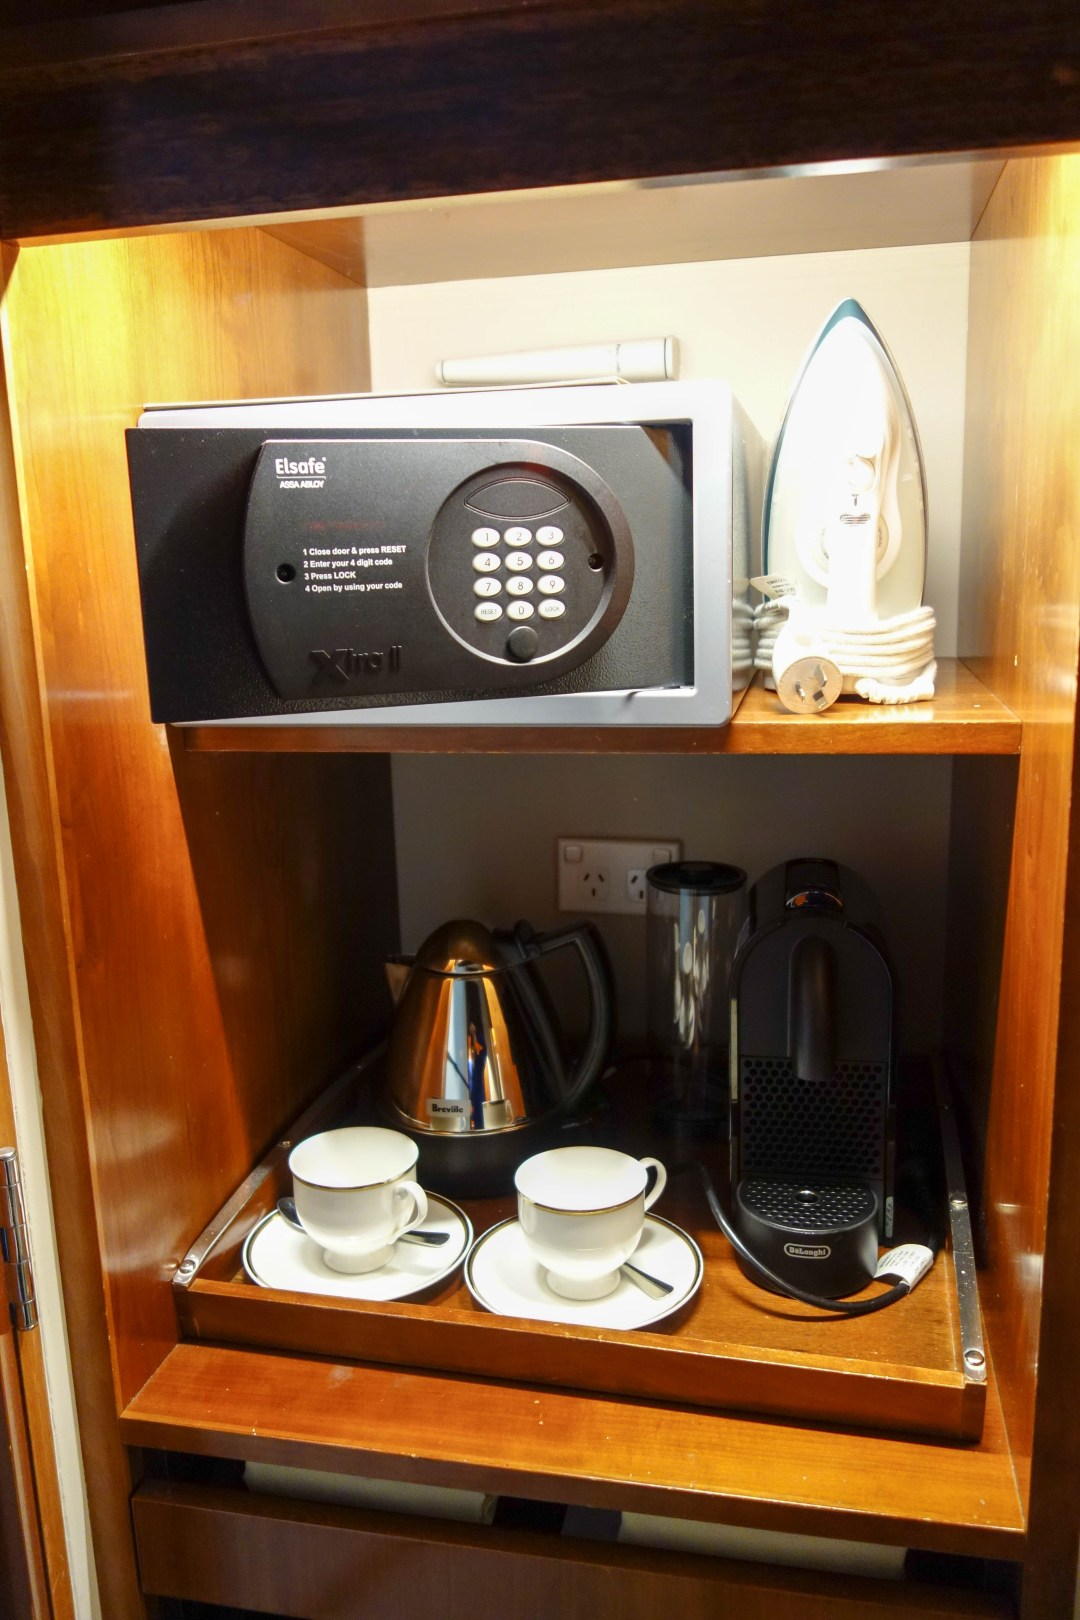 Kettle, Nespresso coffee machine, safe and iron